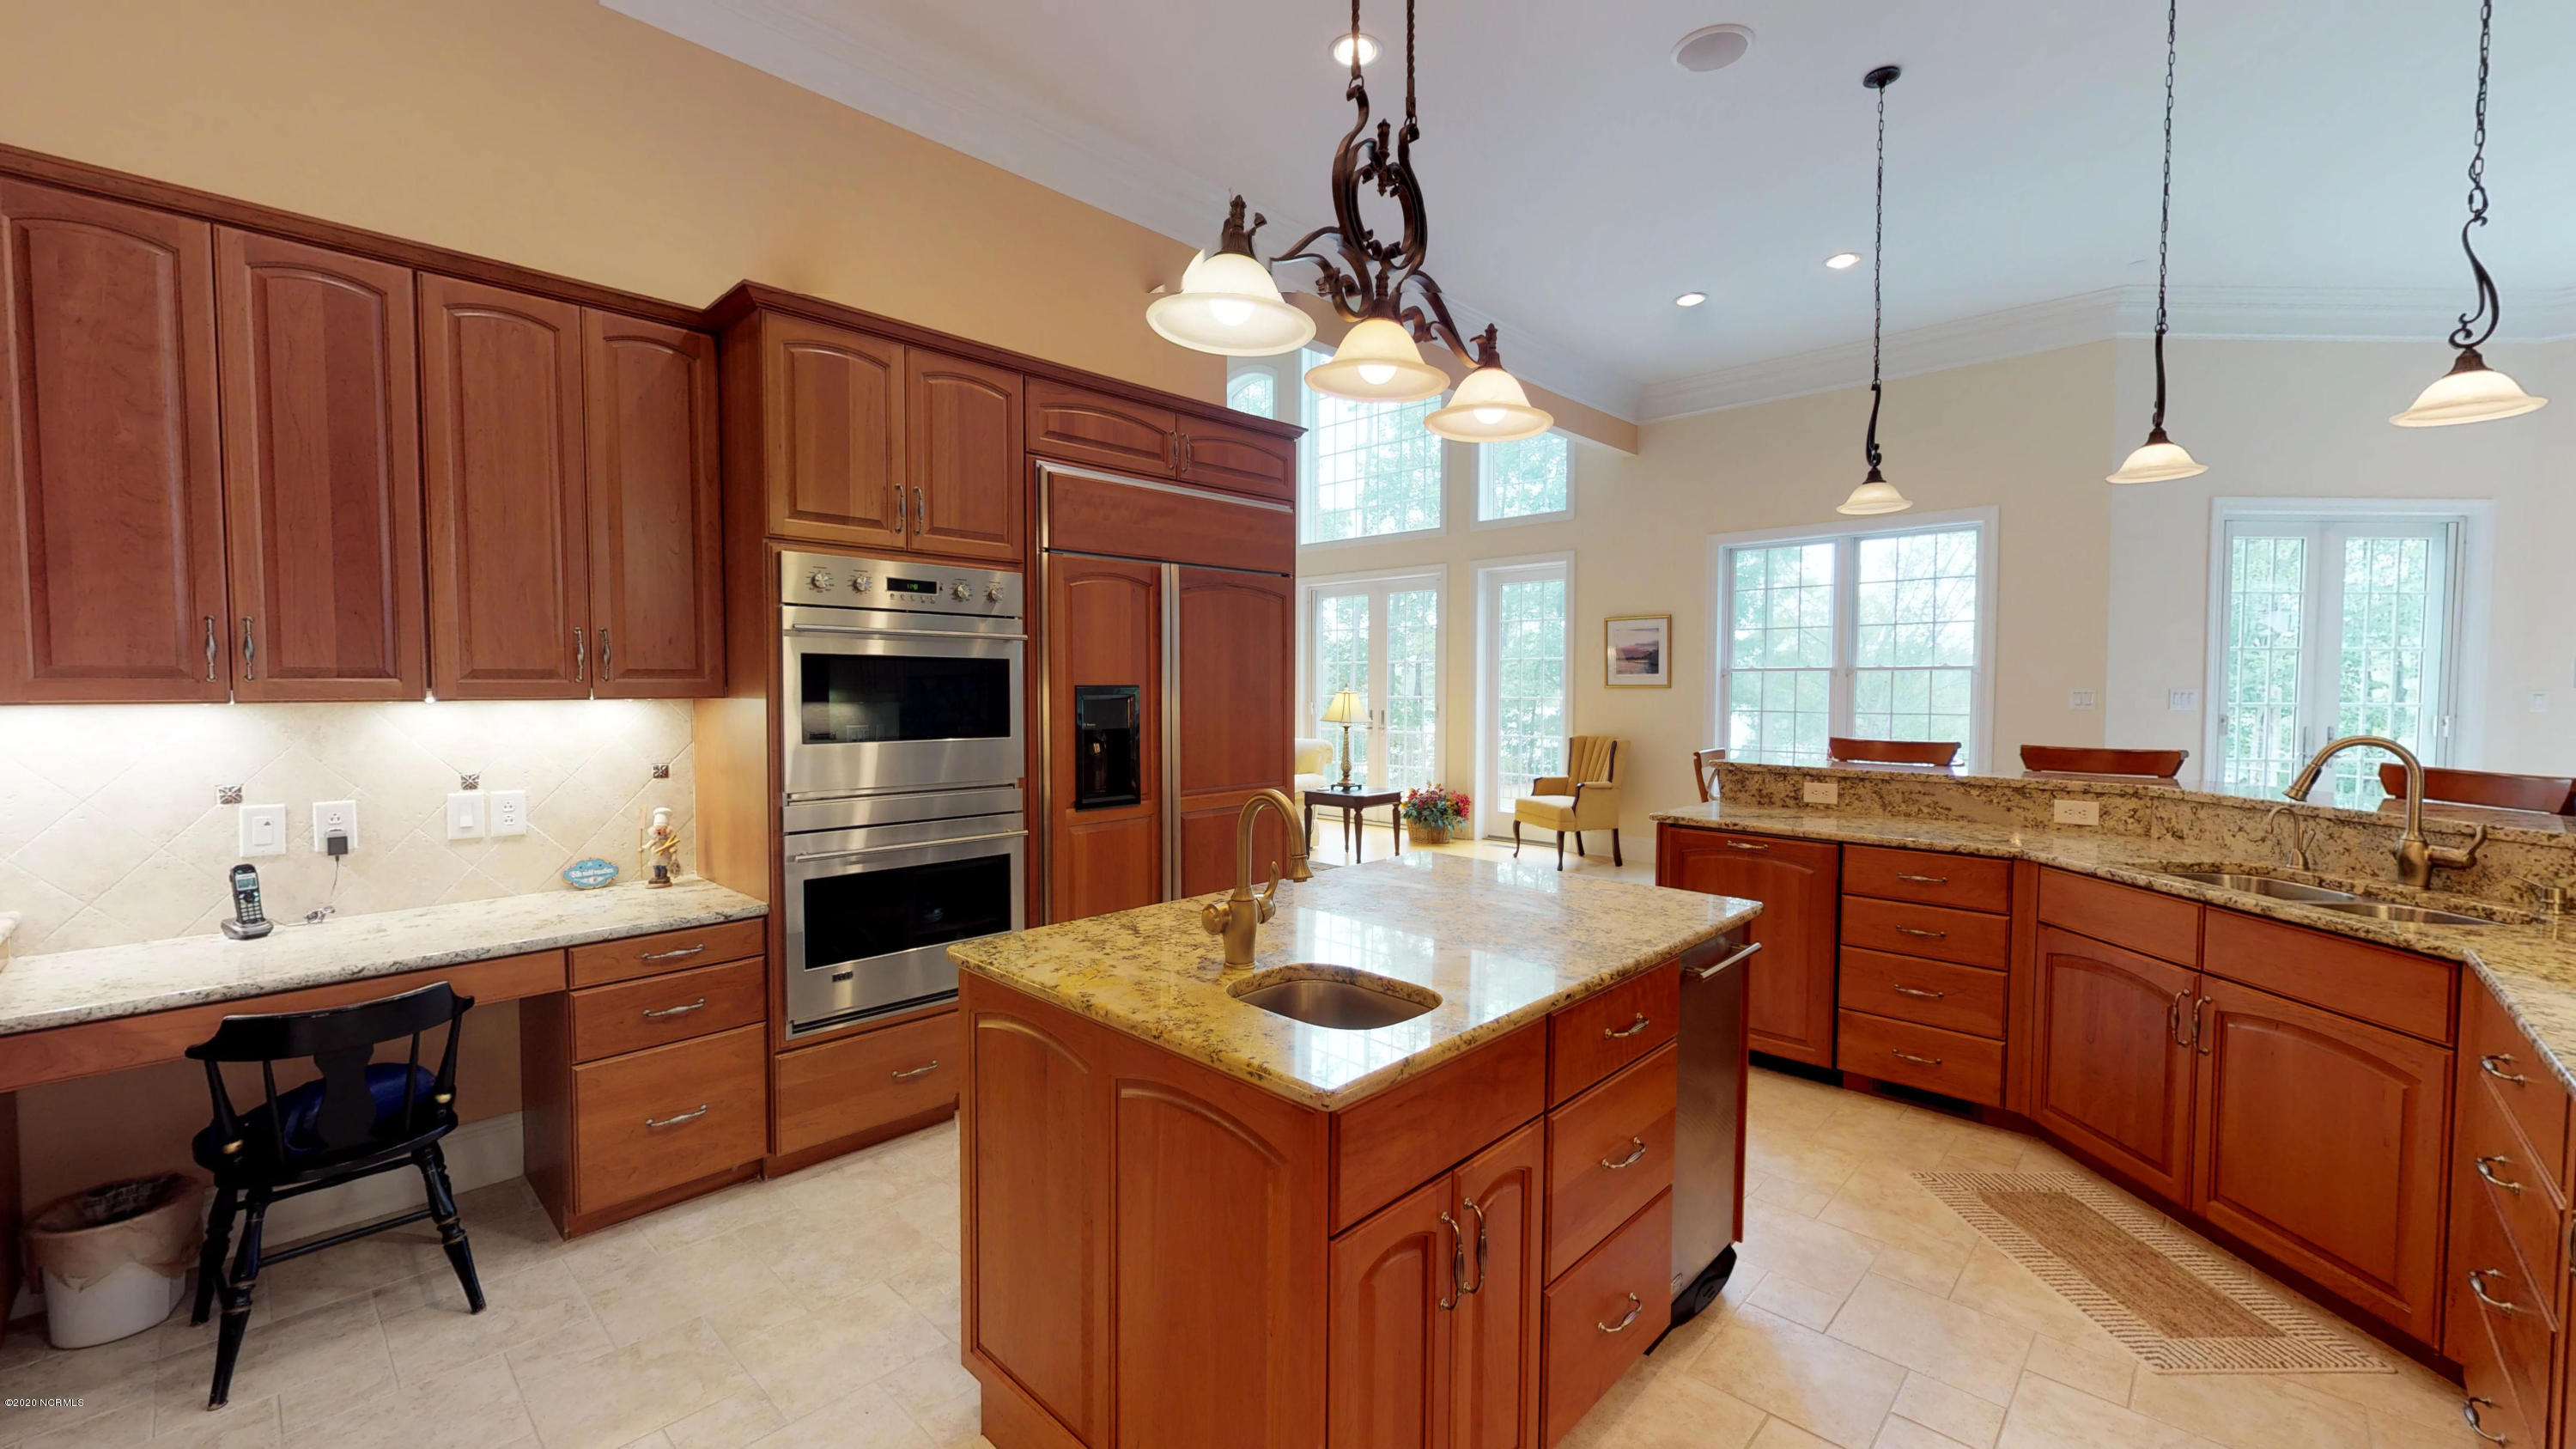 380 Freshwater Drive, Blounts Creek, North Carolina 27814, 5 Bedrooms Bedrooms, 11 Rooms Rooms,4 BathroomsBathrooms,Single family residence,For sale,Freshwater,100276427